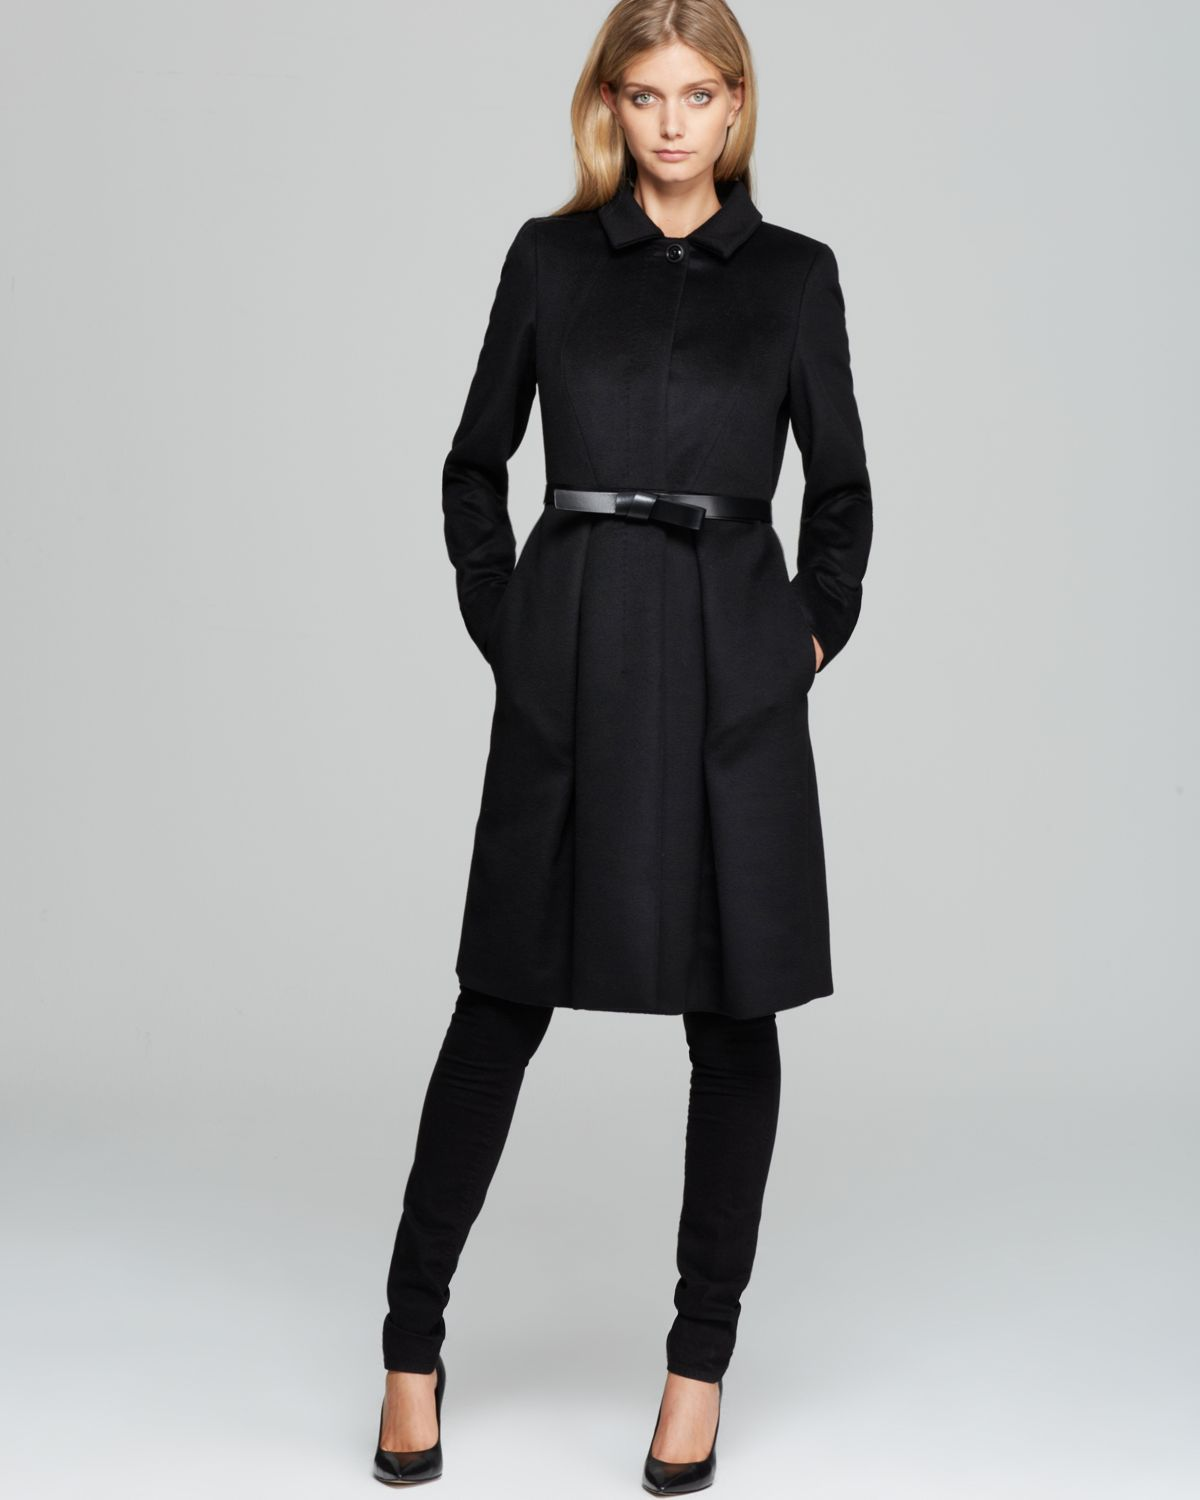 Max mara studio Valdez Pleated Coat with Belt in Black | Lyst